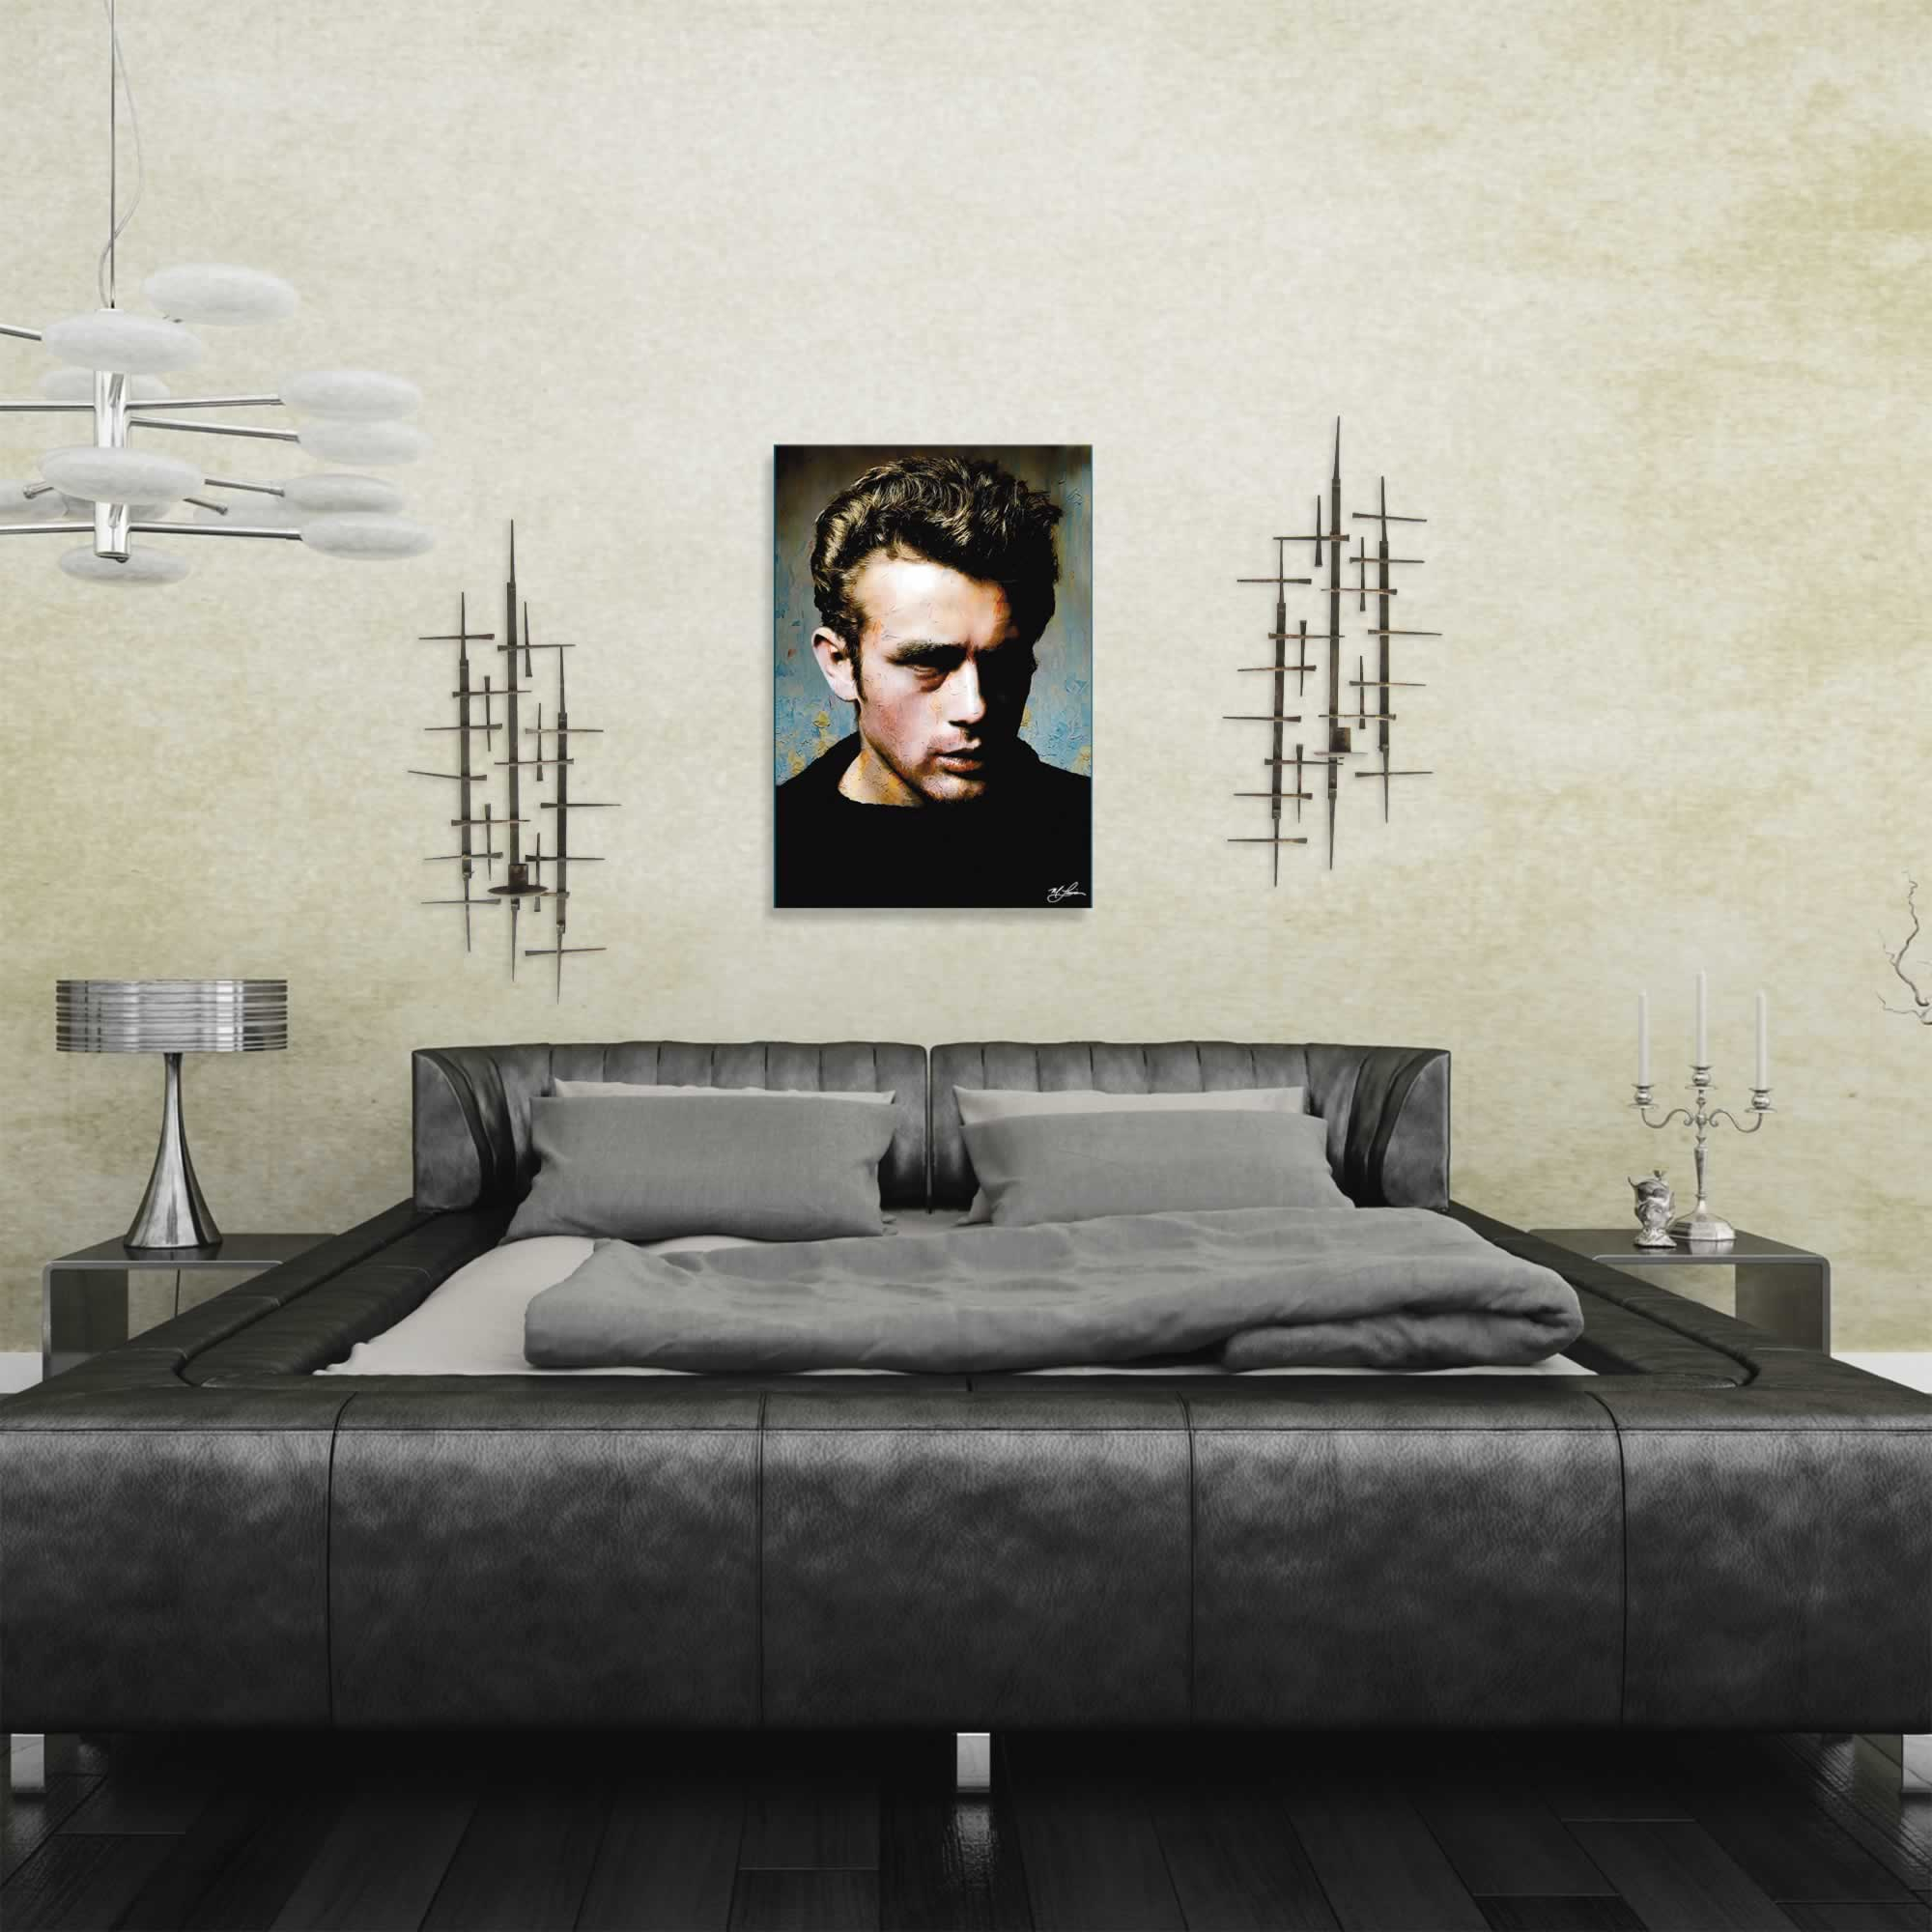 Mark Lewis 'James Dean Gentle Trust' Limited Edition Pop Art Print on Metal or Acrylic - Alternate View 1